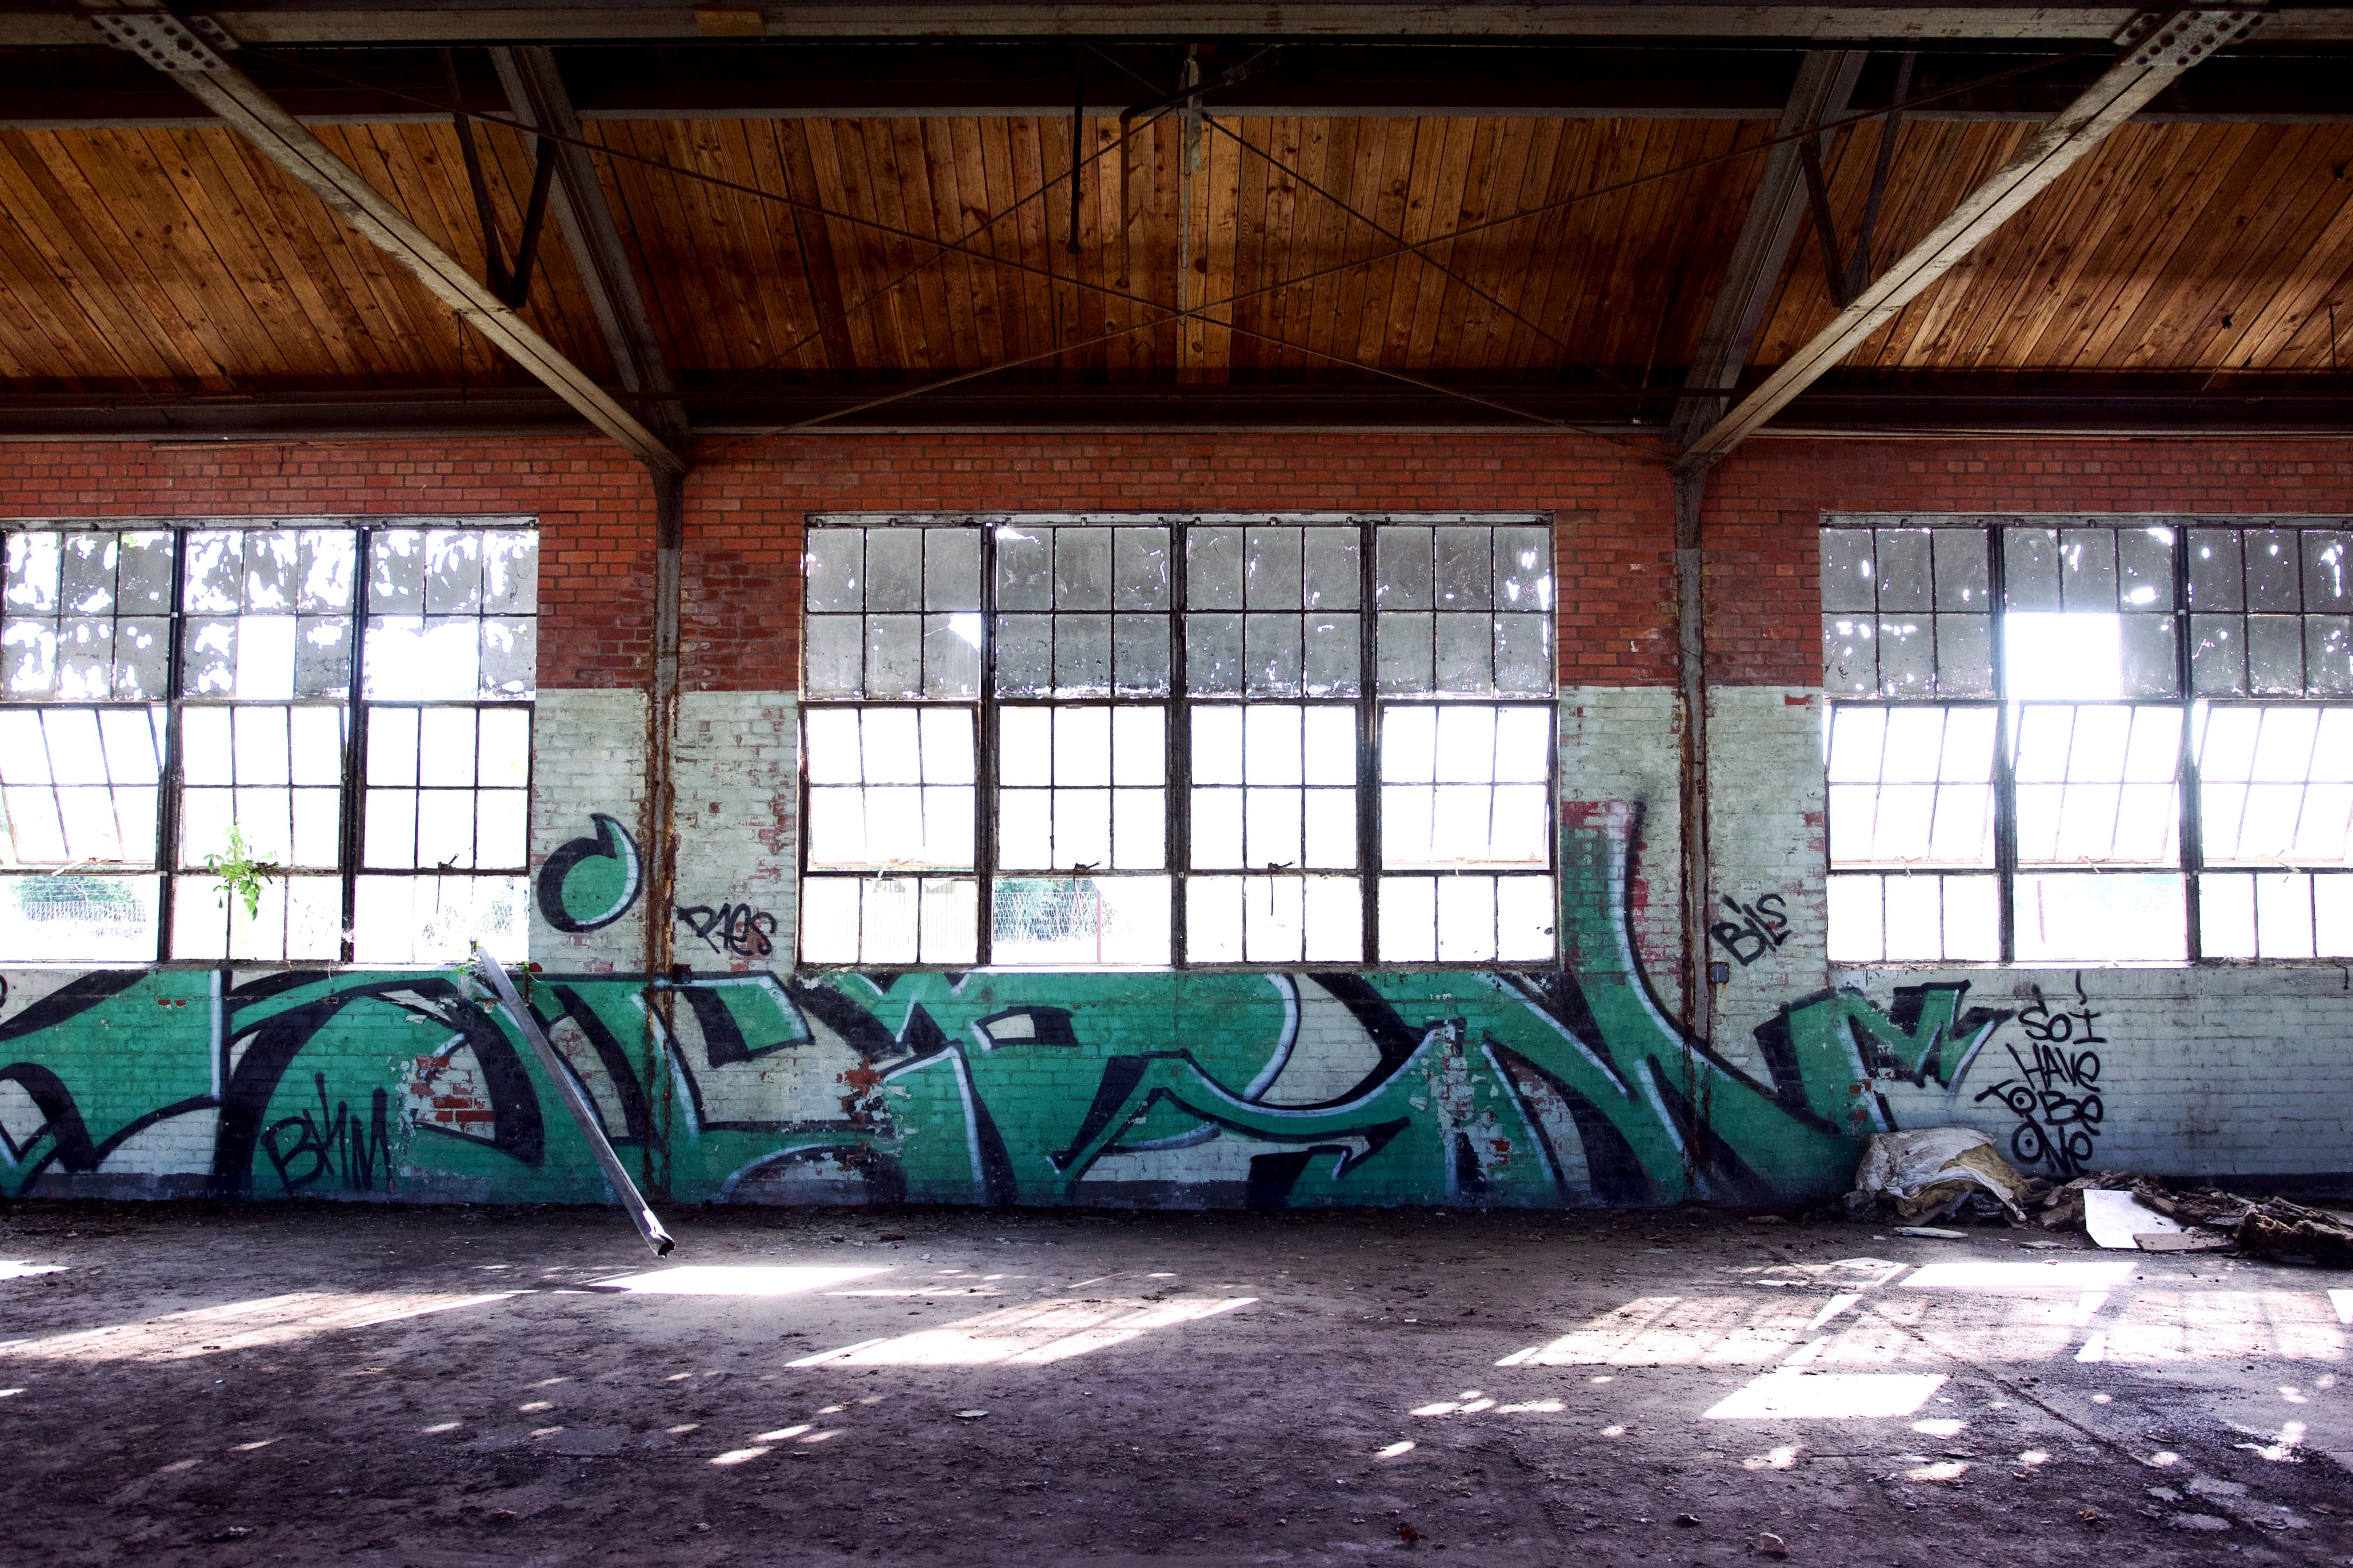 Inside an empty old building with graffiti, large windows, and wooden rafters.